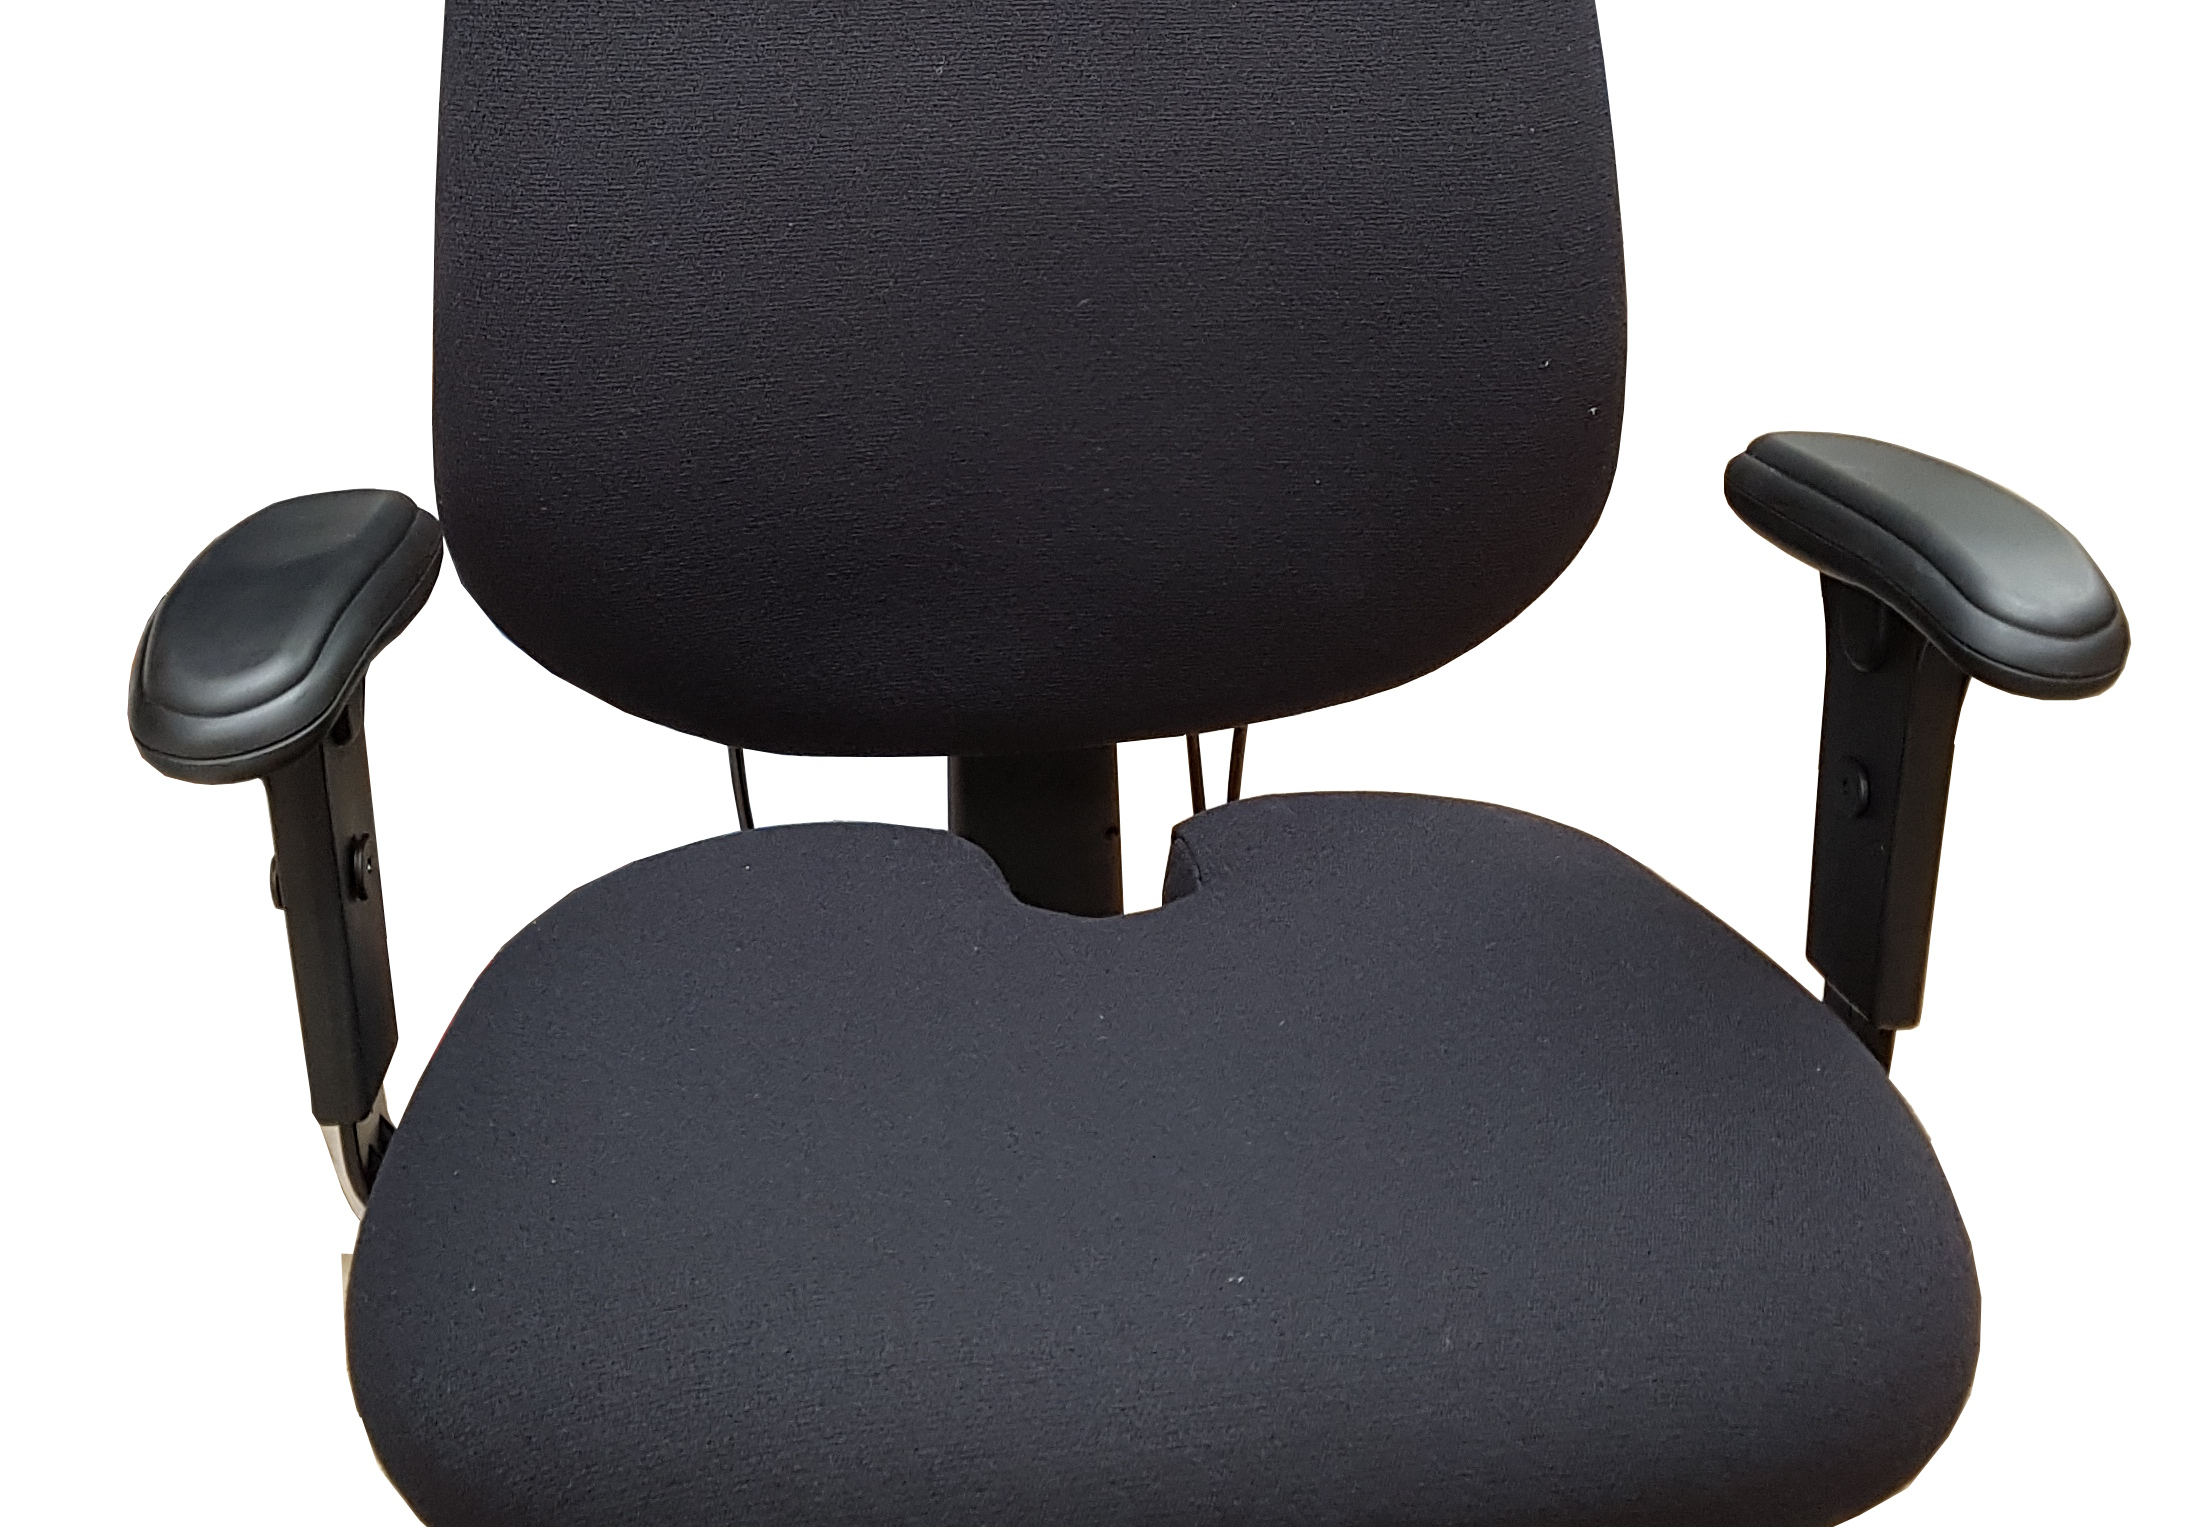 coccyx kneeling chair who sells bean bag chairs tailbone comfort